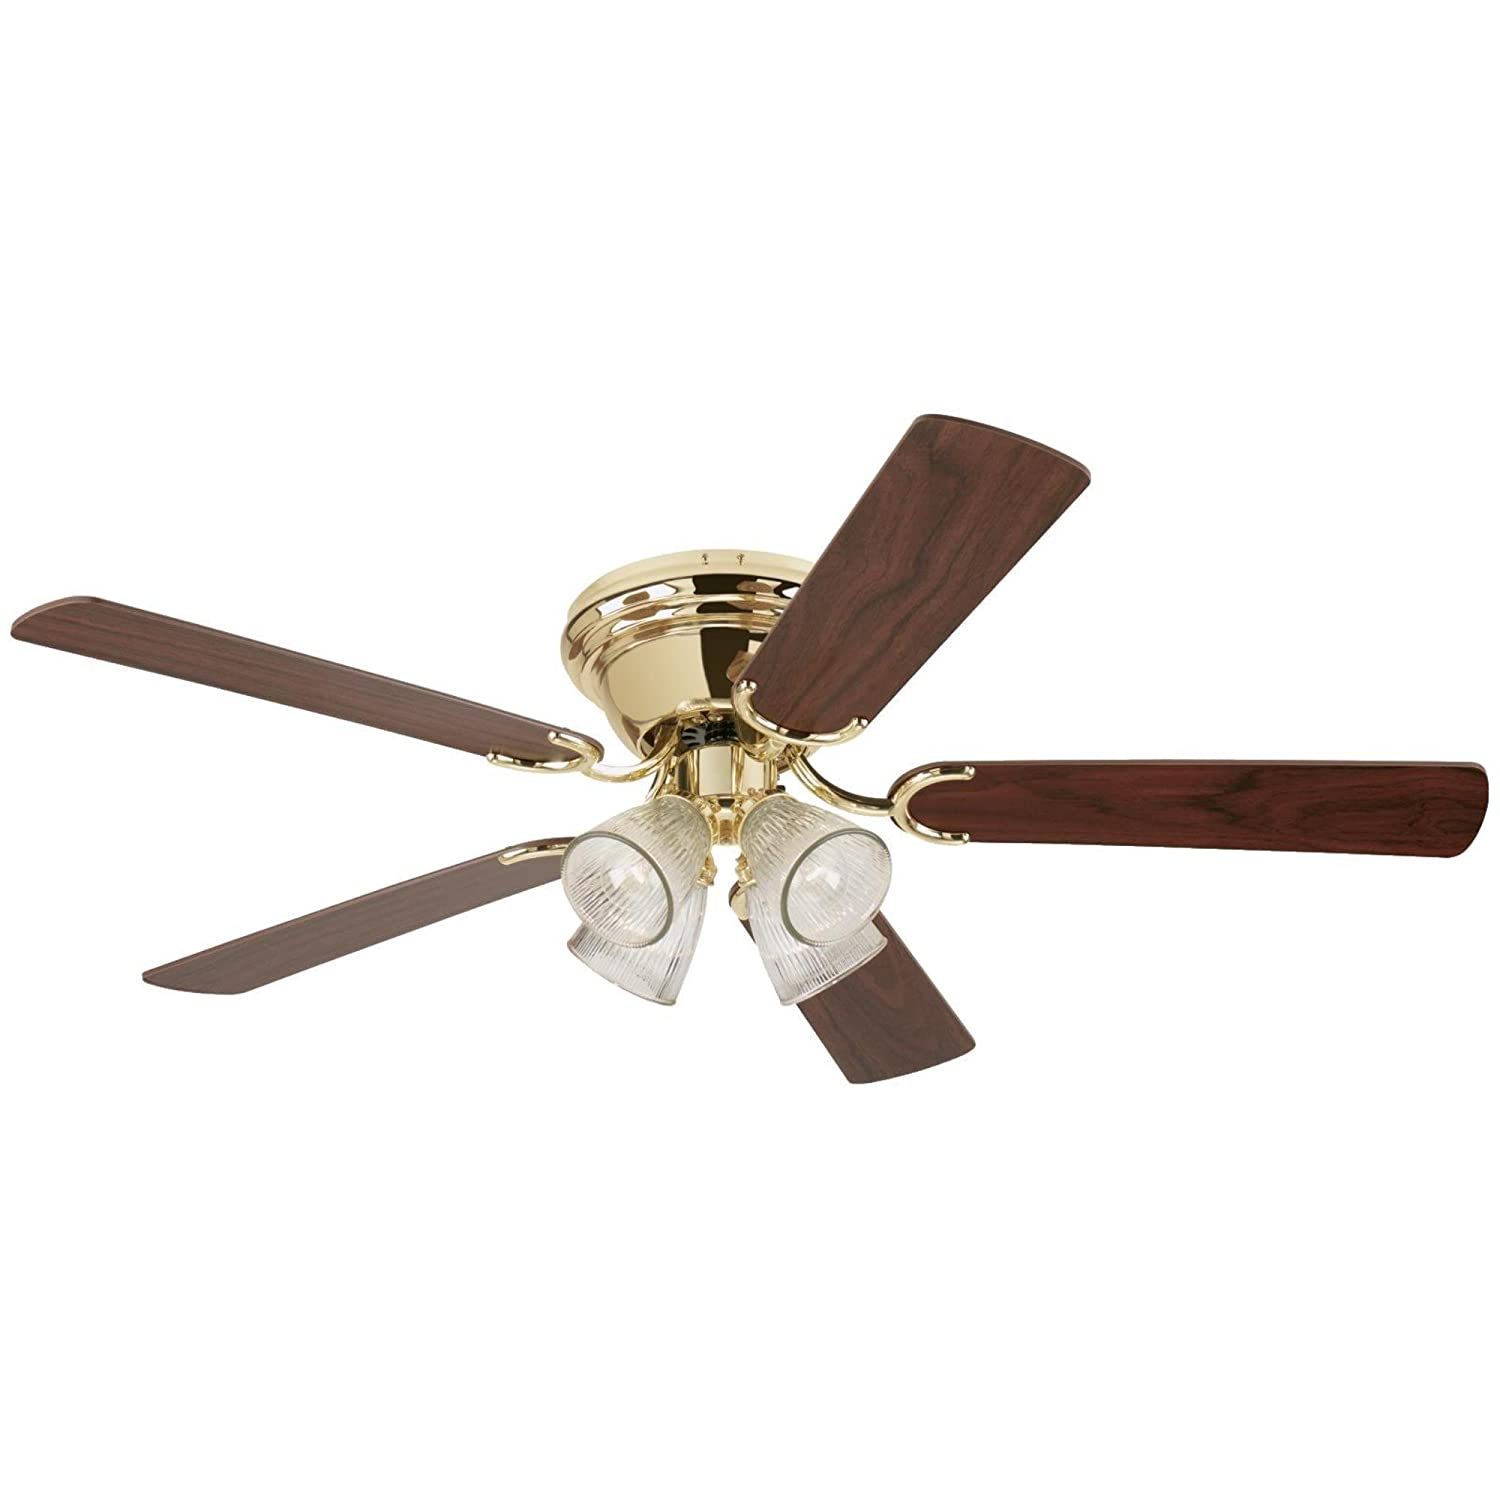 Westinghouse Lighting 7216500 Contempra IV 52-Inch Indoor Ceiling Fan, Light Kit with Clear Ribbed Glass, Polished Brass Includes Bulbs